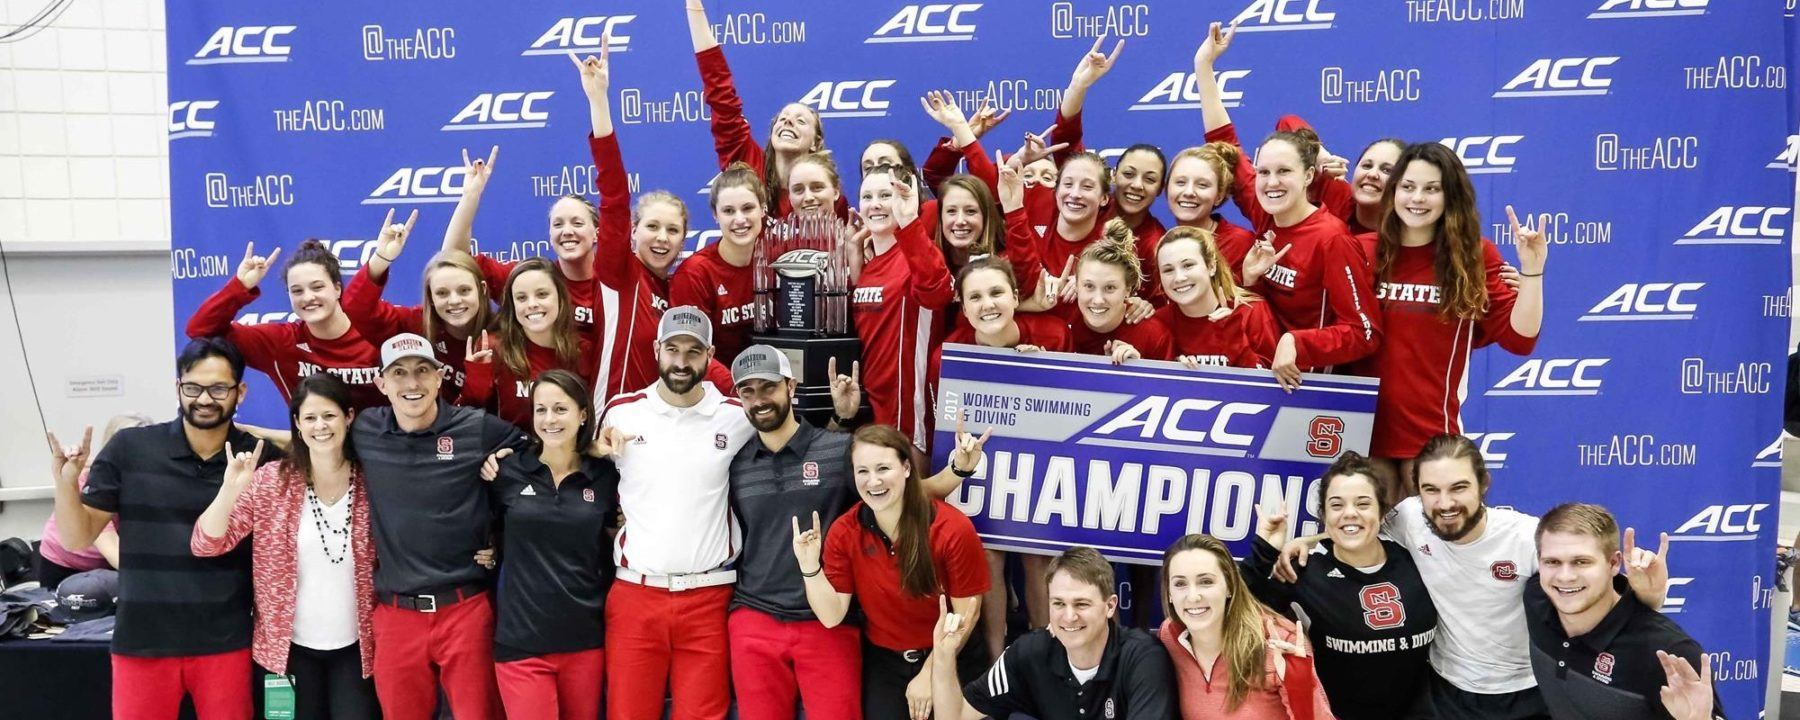 SwimSwam Pulse: 49.8% Saw NC State's ACC Title Coming